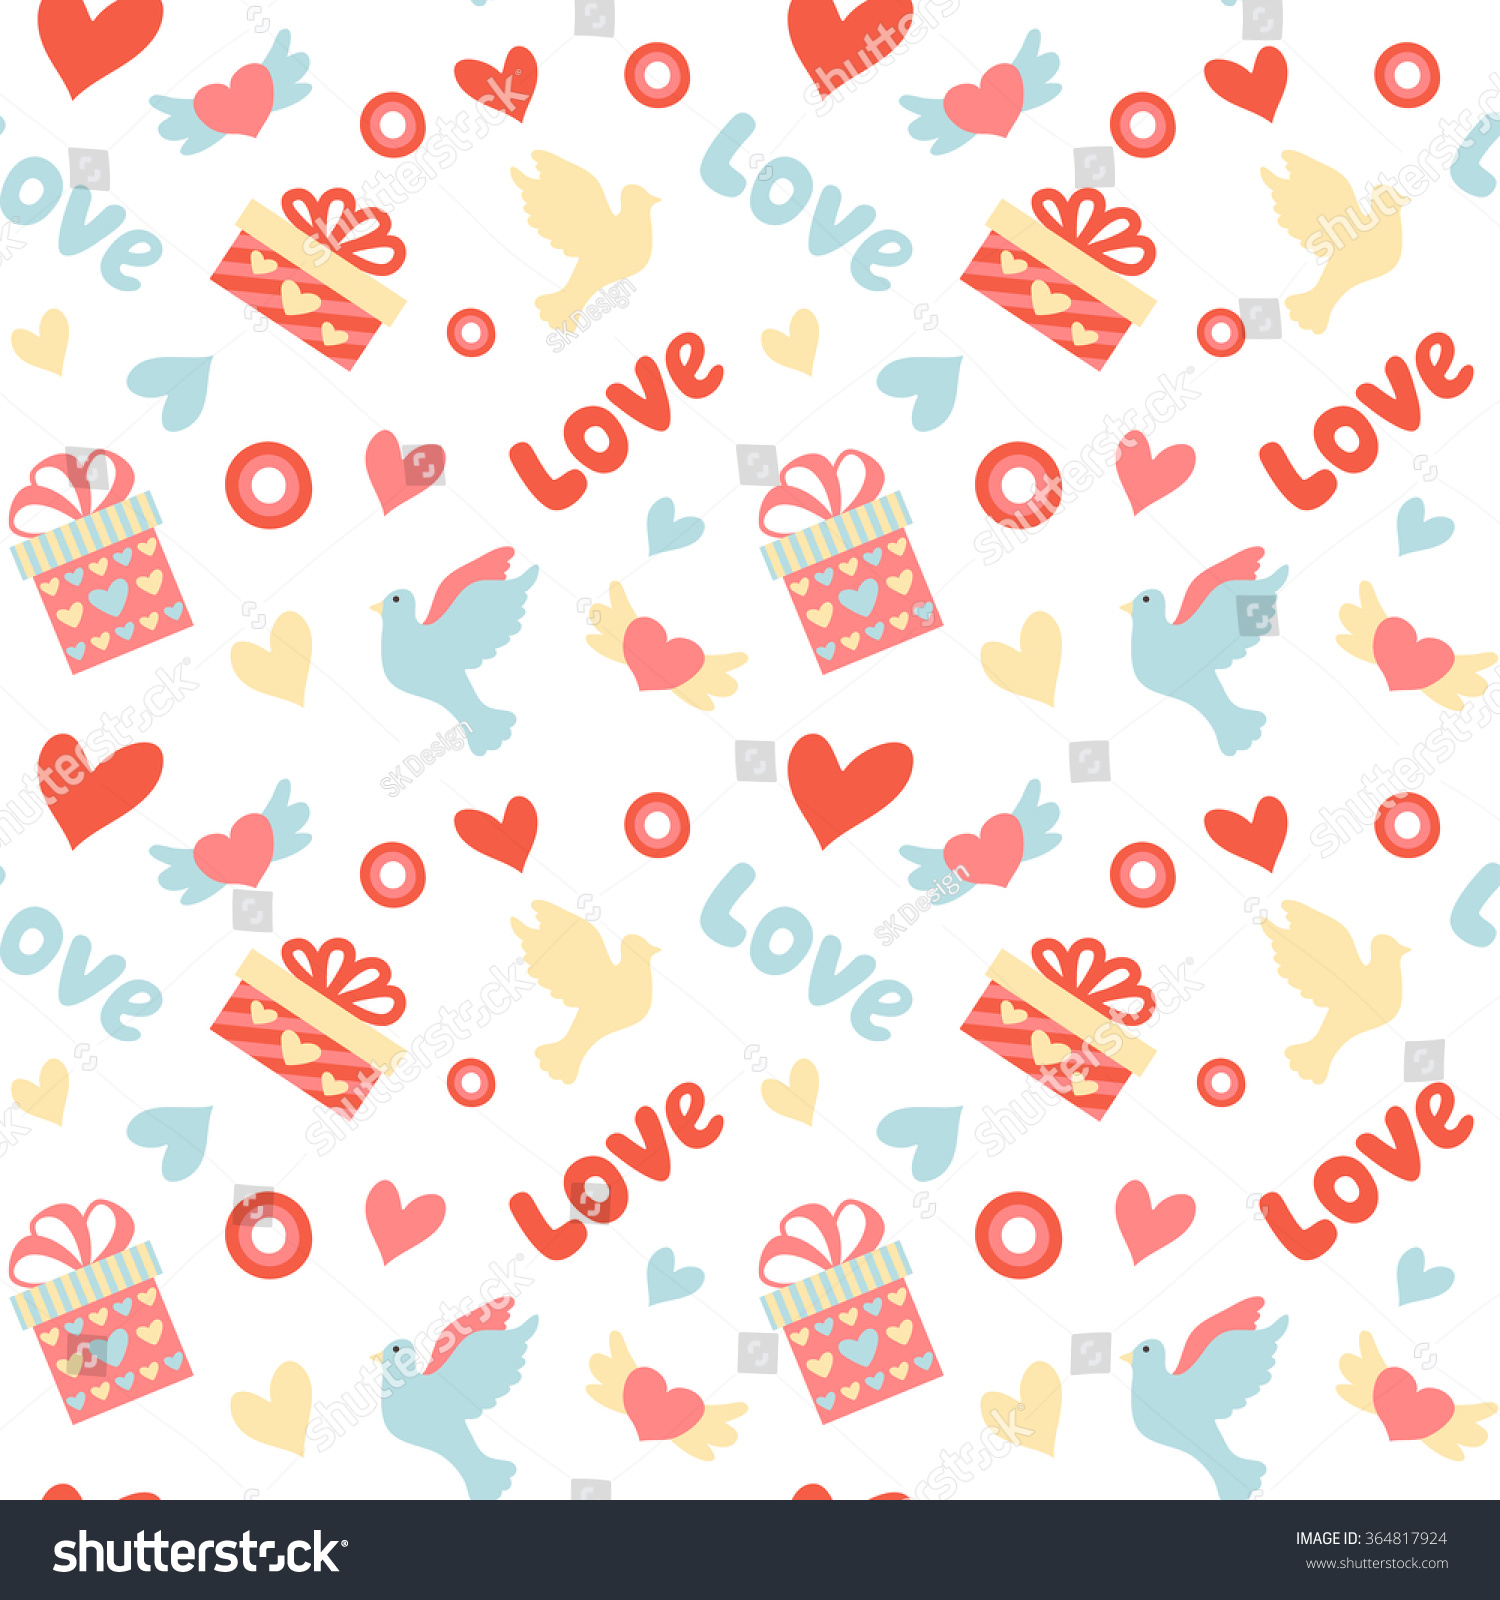 Romantic vector seamless background greeting card wallpaper vector art -  Vectors Illustrations Footage Music Romantic Seamless Pattern With Love Words Heart Shapes Birds And Gifts Good For